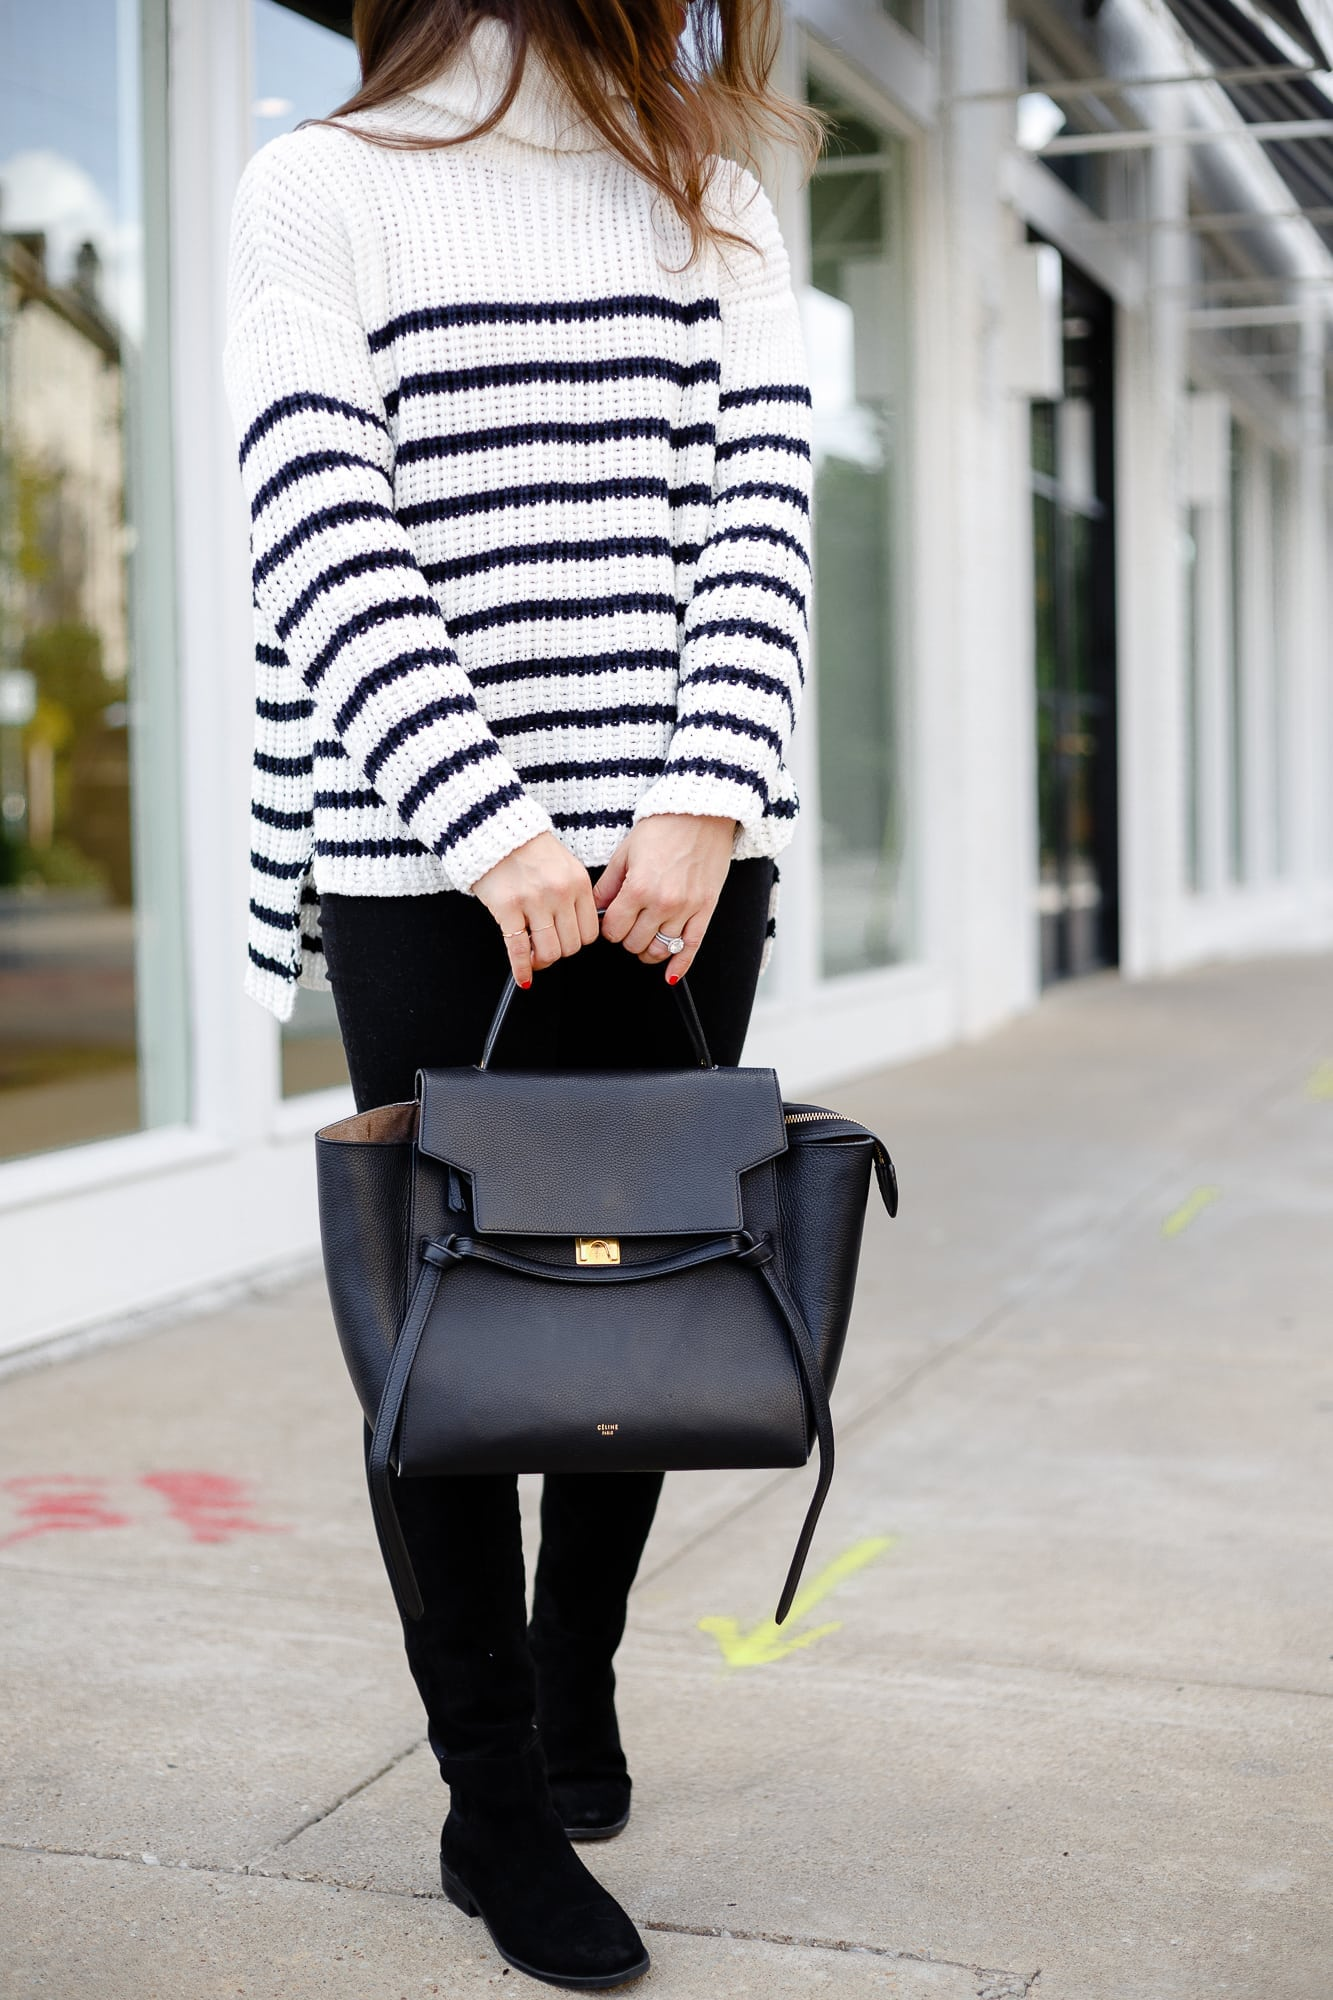 Details of Celine Bag and Striped Sweater